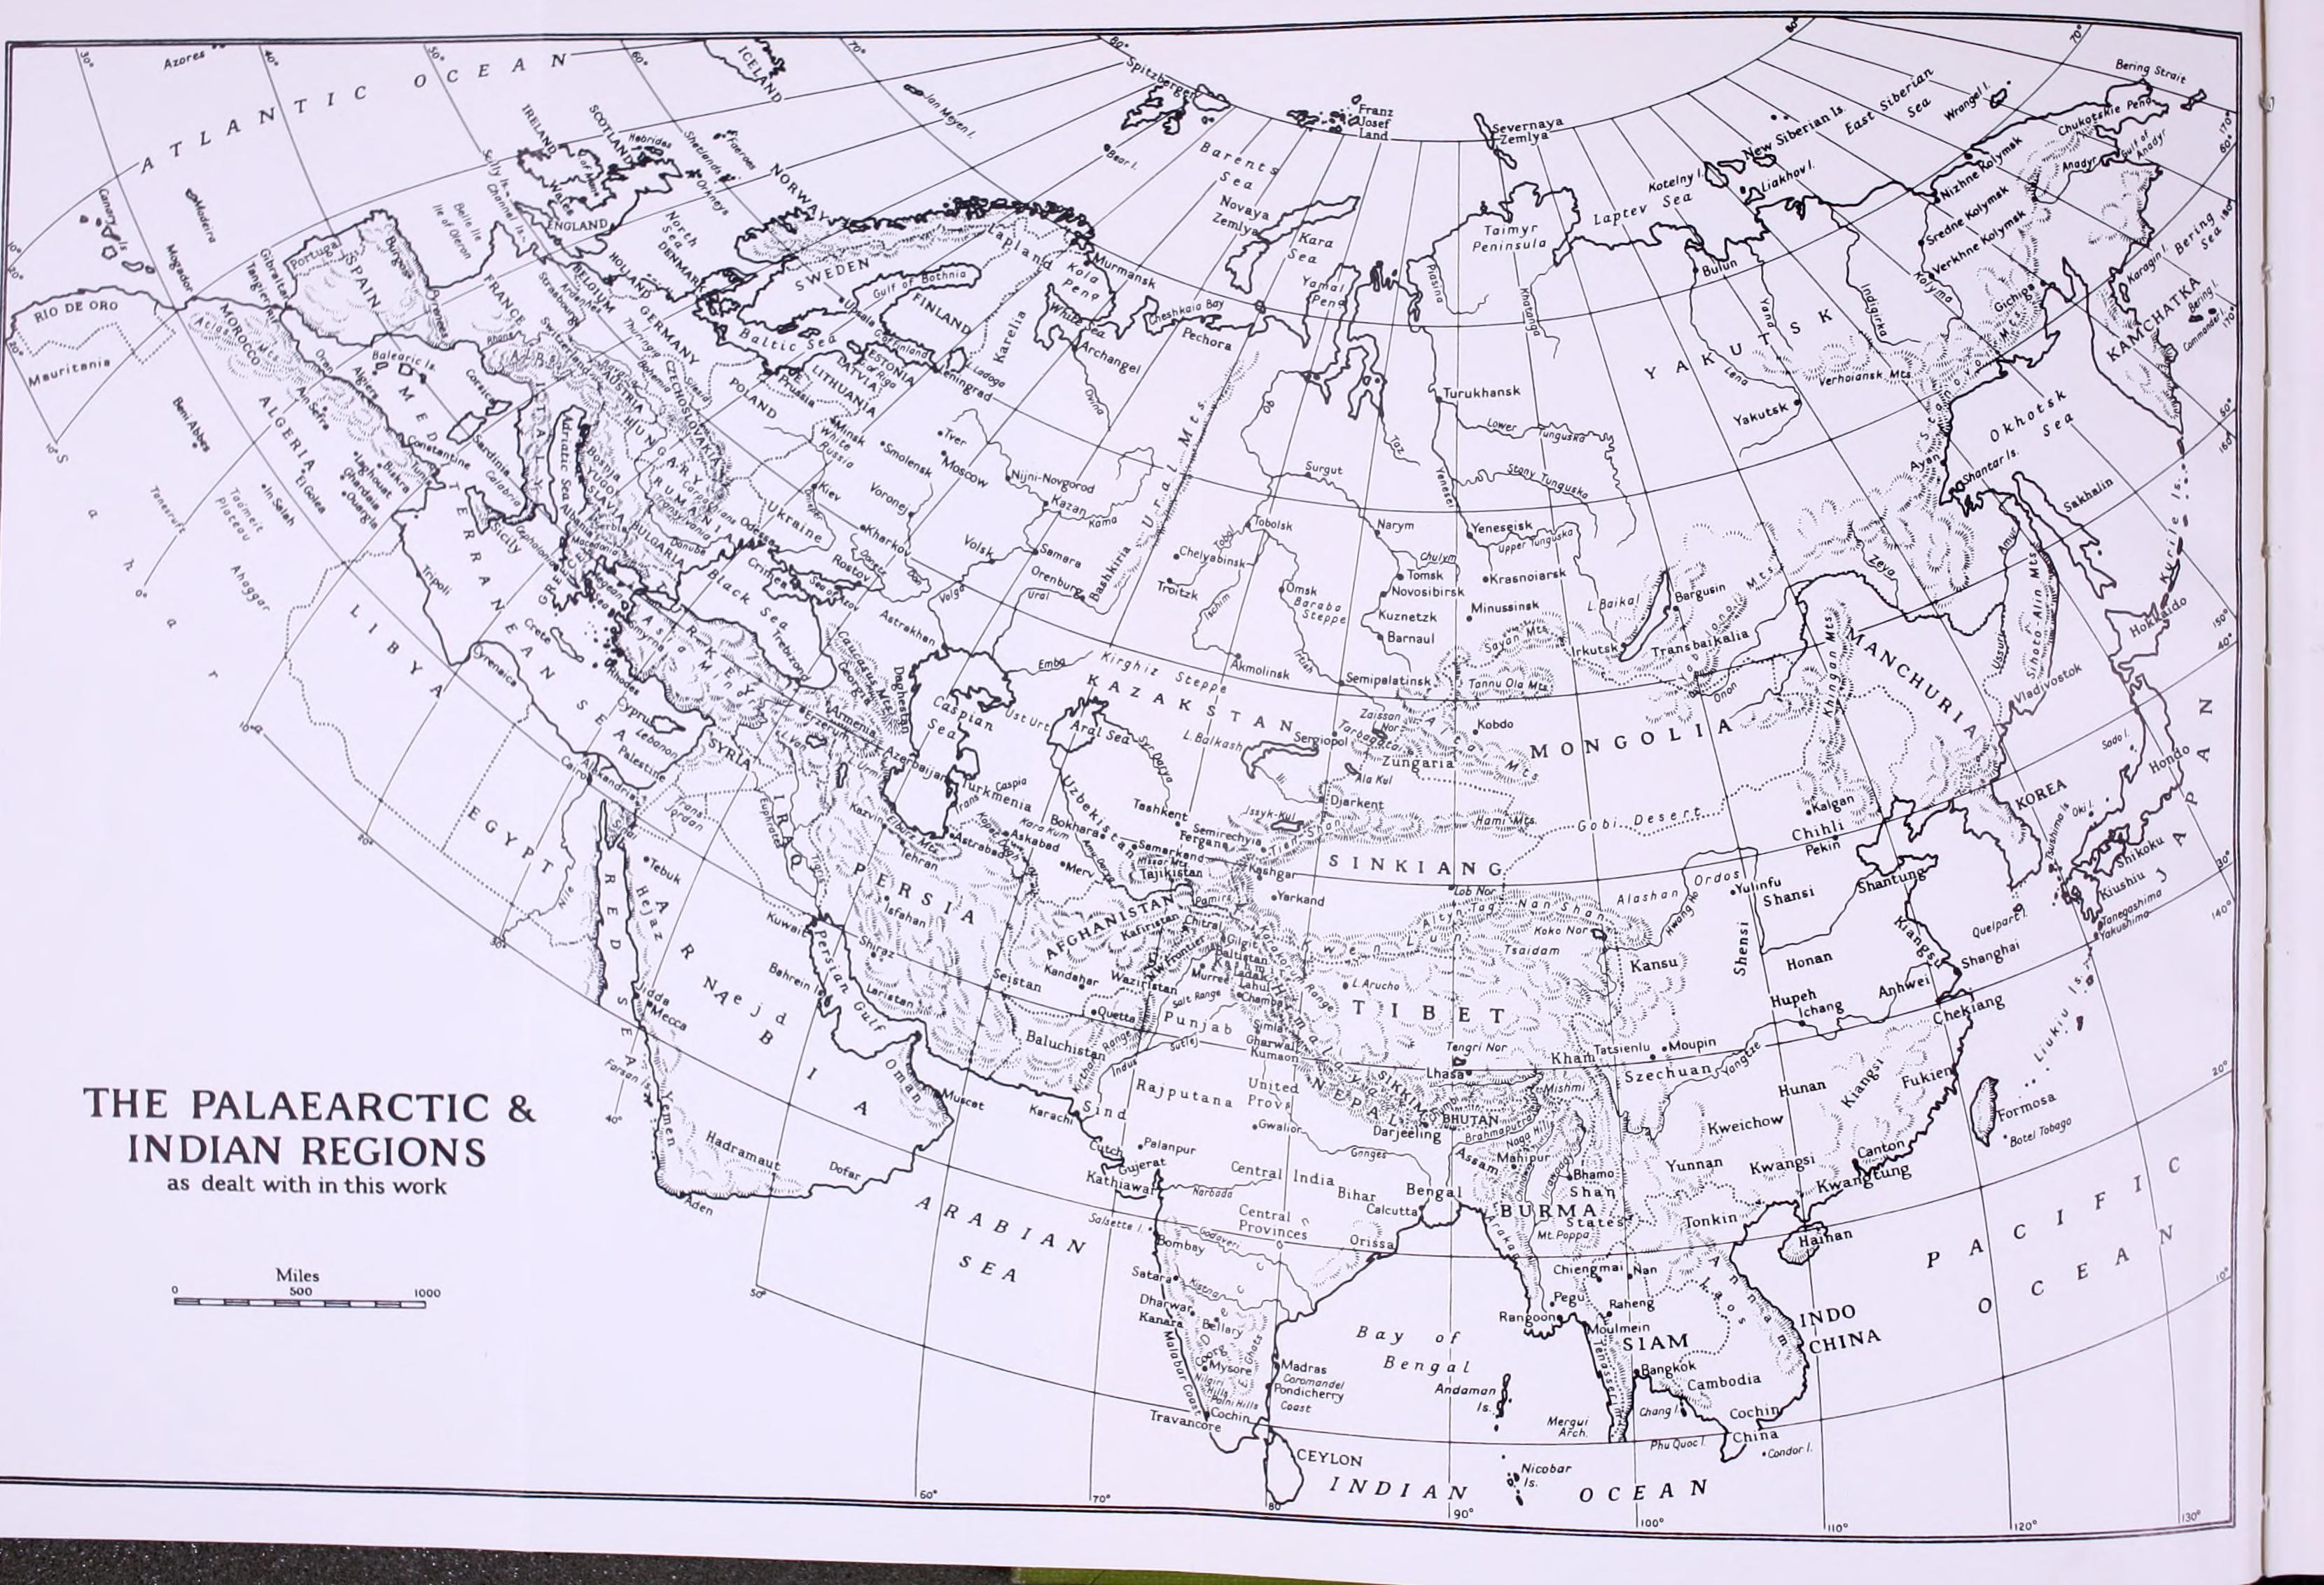 bcca48224b68 File Checklist of Palaearctic and Indian mammals 1758 to 1946 BHL8727655.jpg